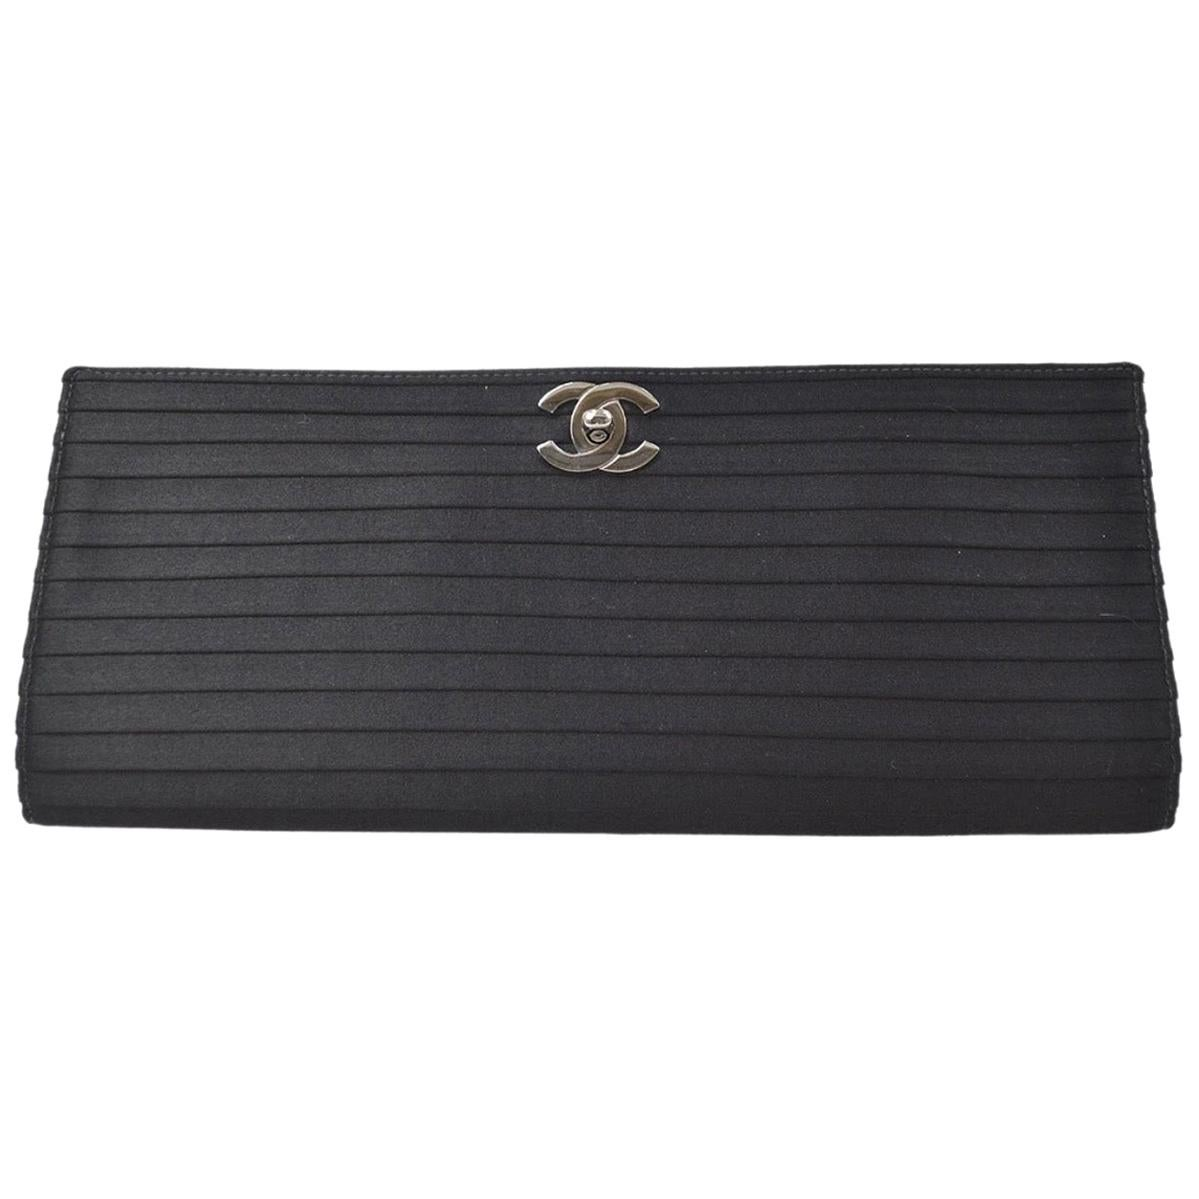 Chanel Black Satin Striped Silver CC Envelope Medium Evening Flap Clutch Bag